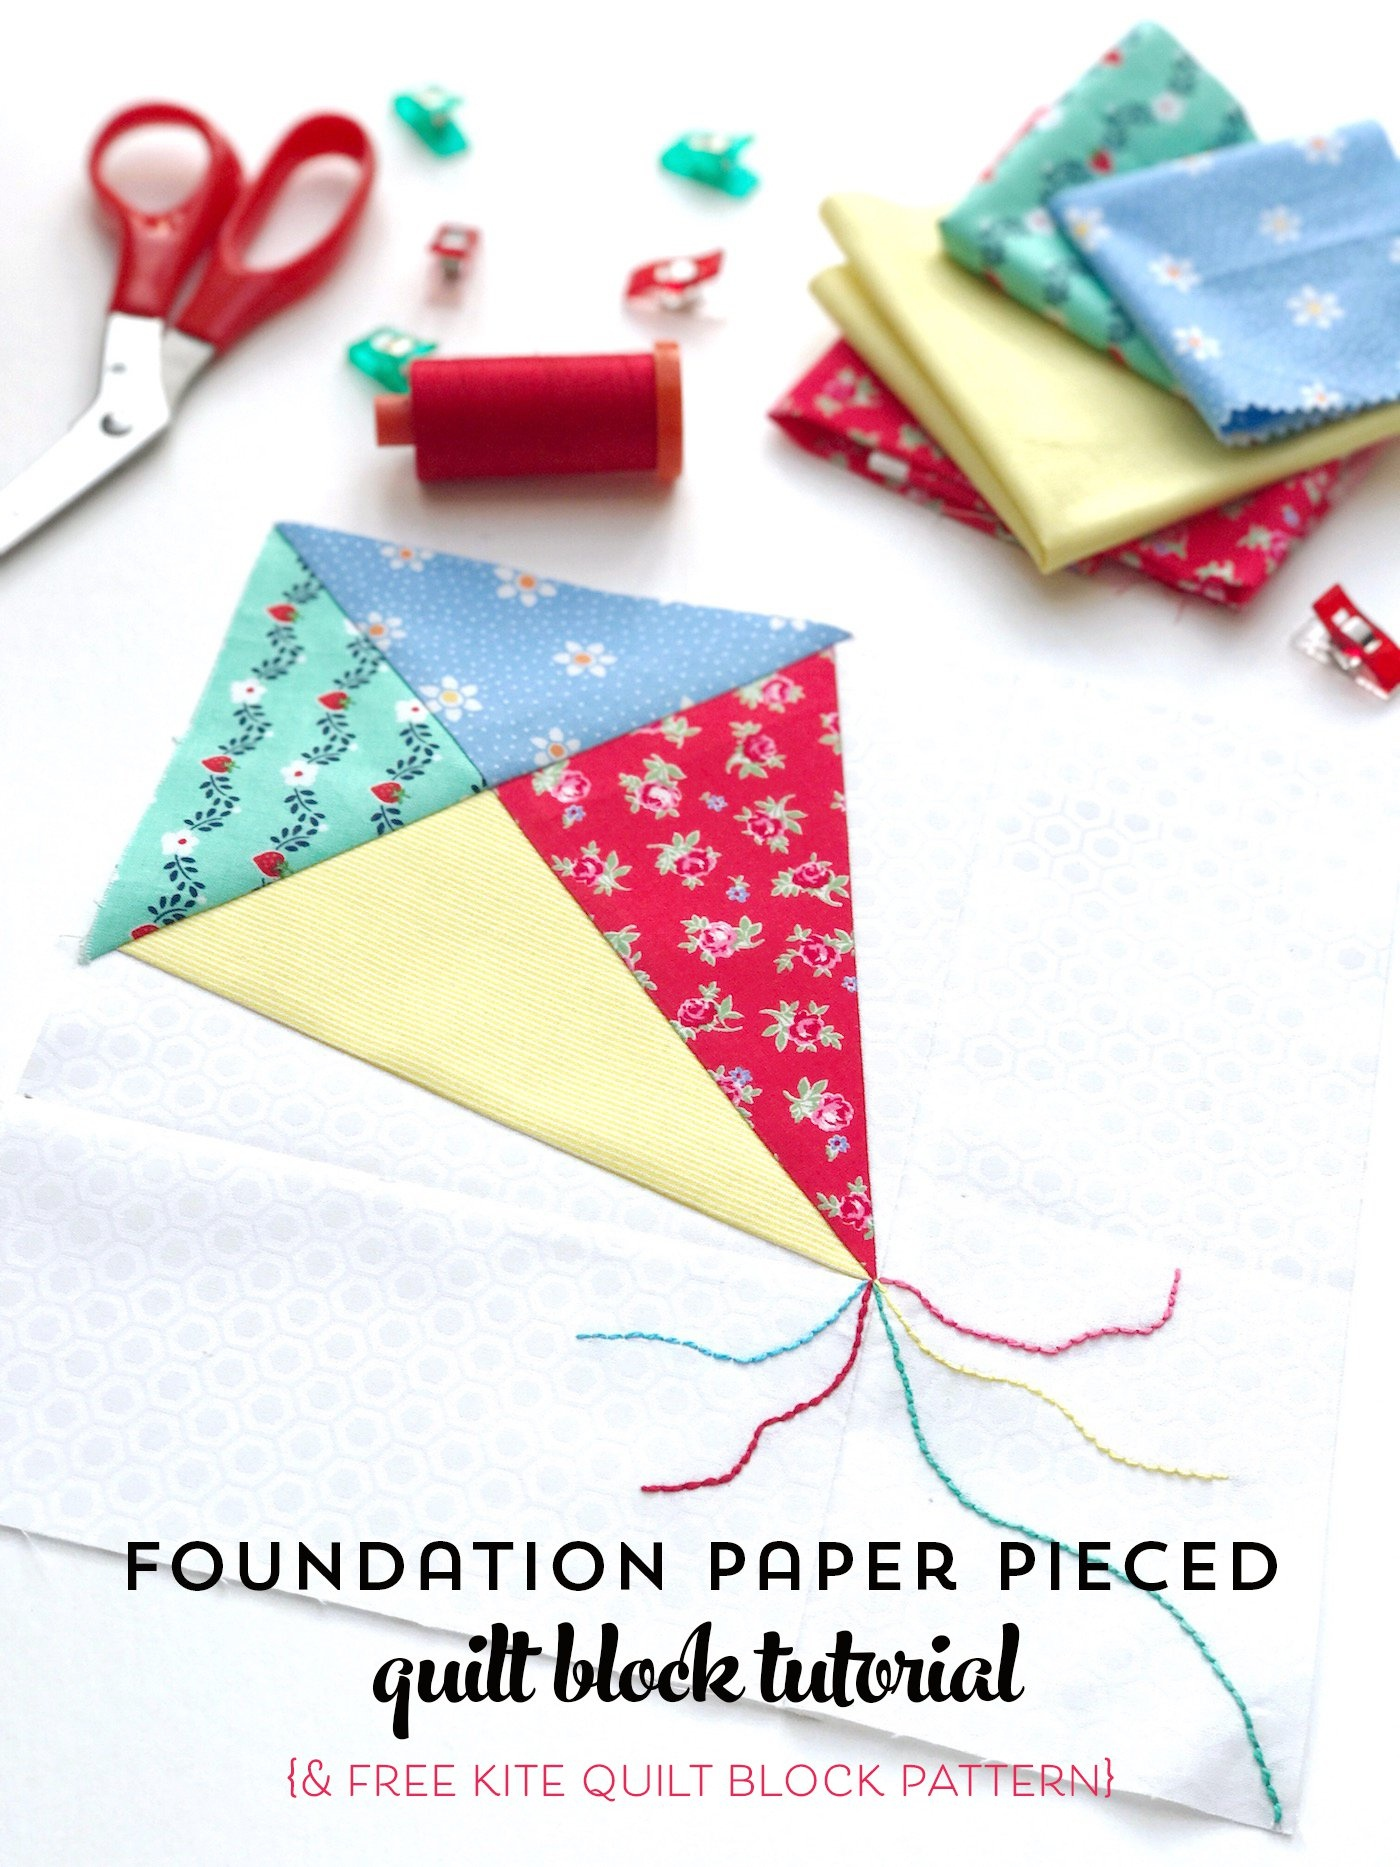 Foundation Paper Piecing Tutorial For Beginners With Free Kite Paper - Free Printable Paper Piecing Patterns For Quilting